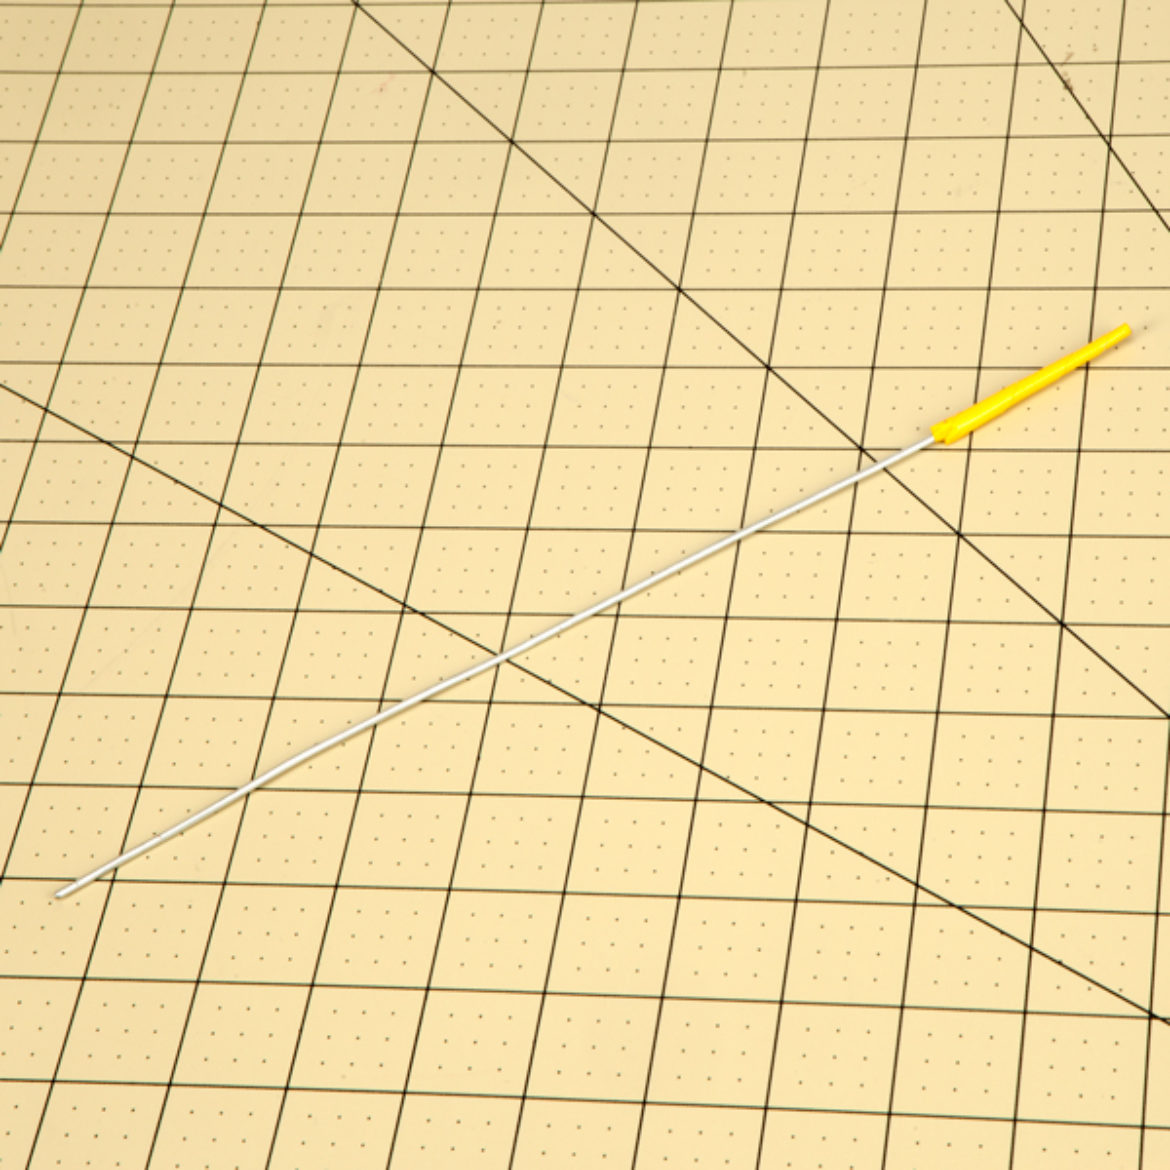 Triangle from previous step rolled onto a thick piece of wire so that the tape tapers off at the tip